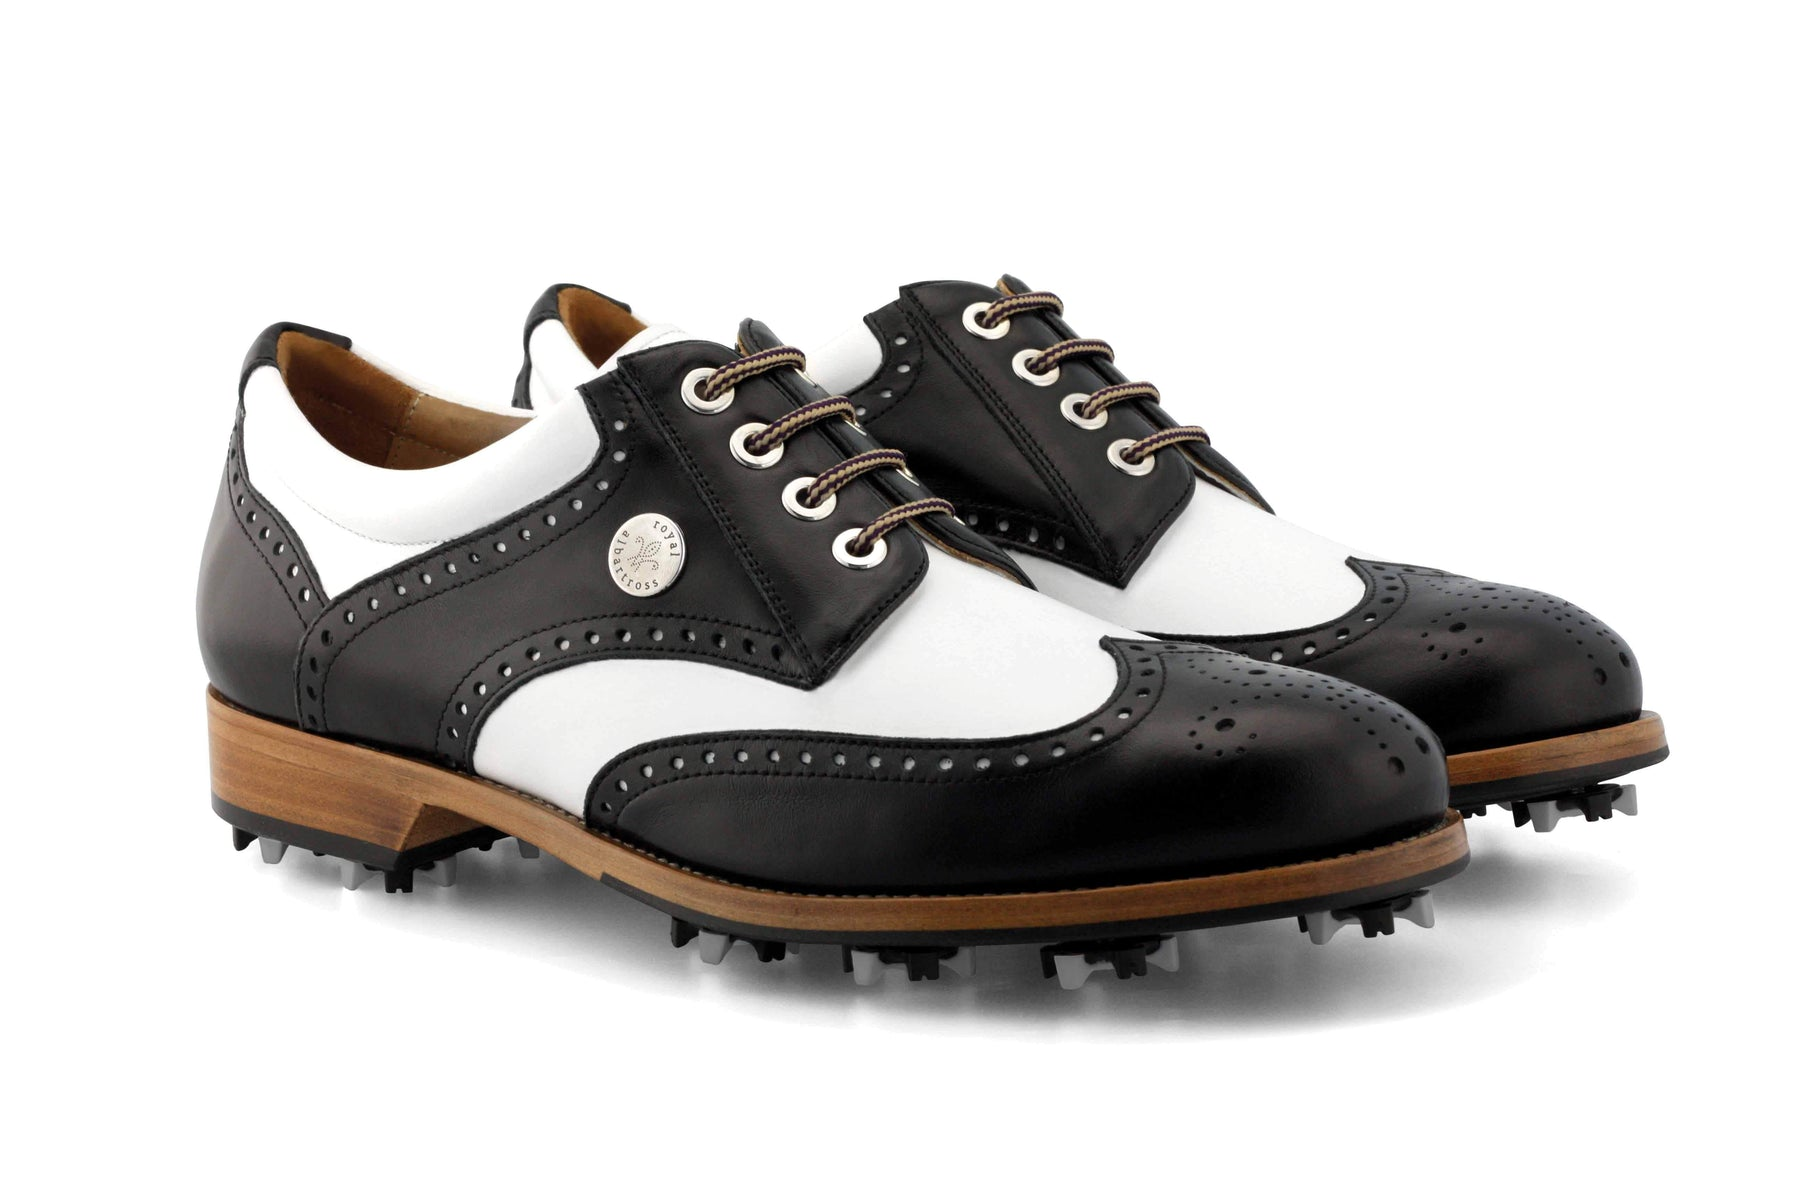 Men's Spiked Golf Shoes | The Squire | Royal Albartross The Squire